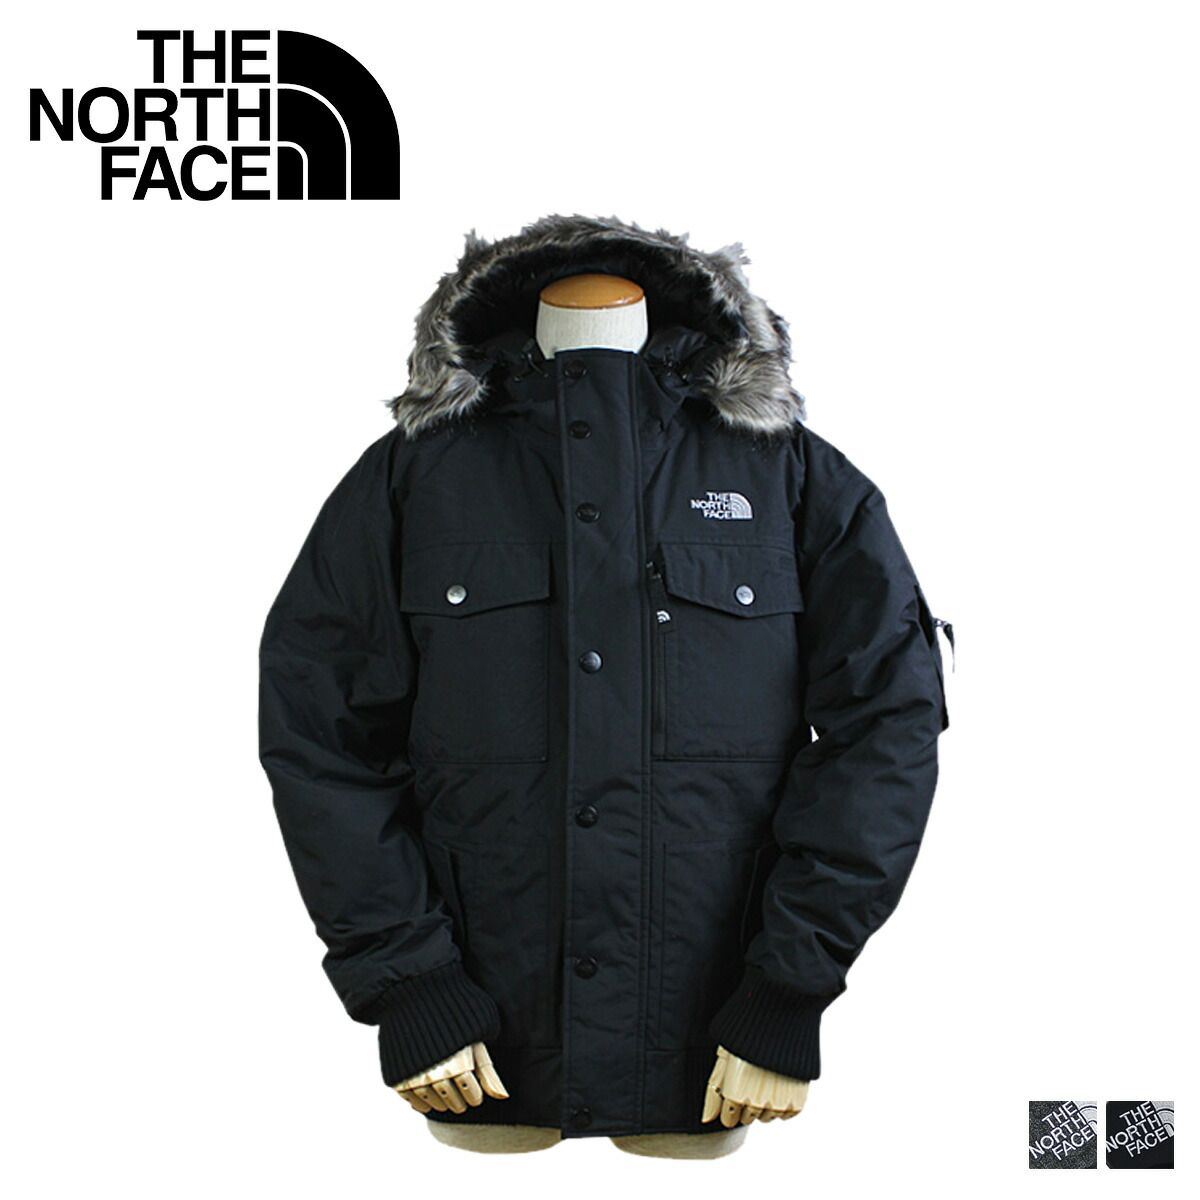 Sugar Online Shop Sold Out The Gotham Jacket Mens North Face The